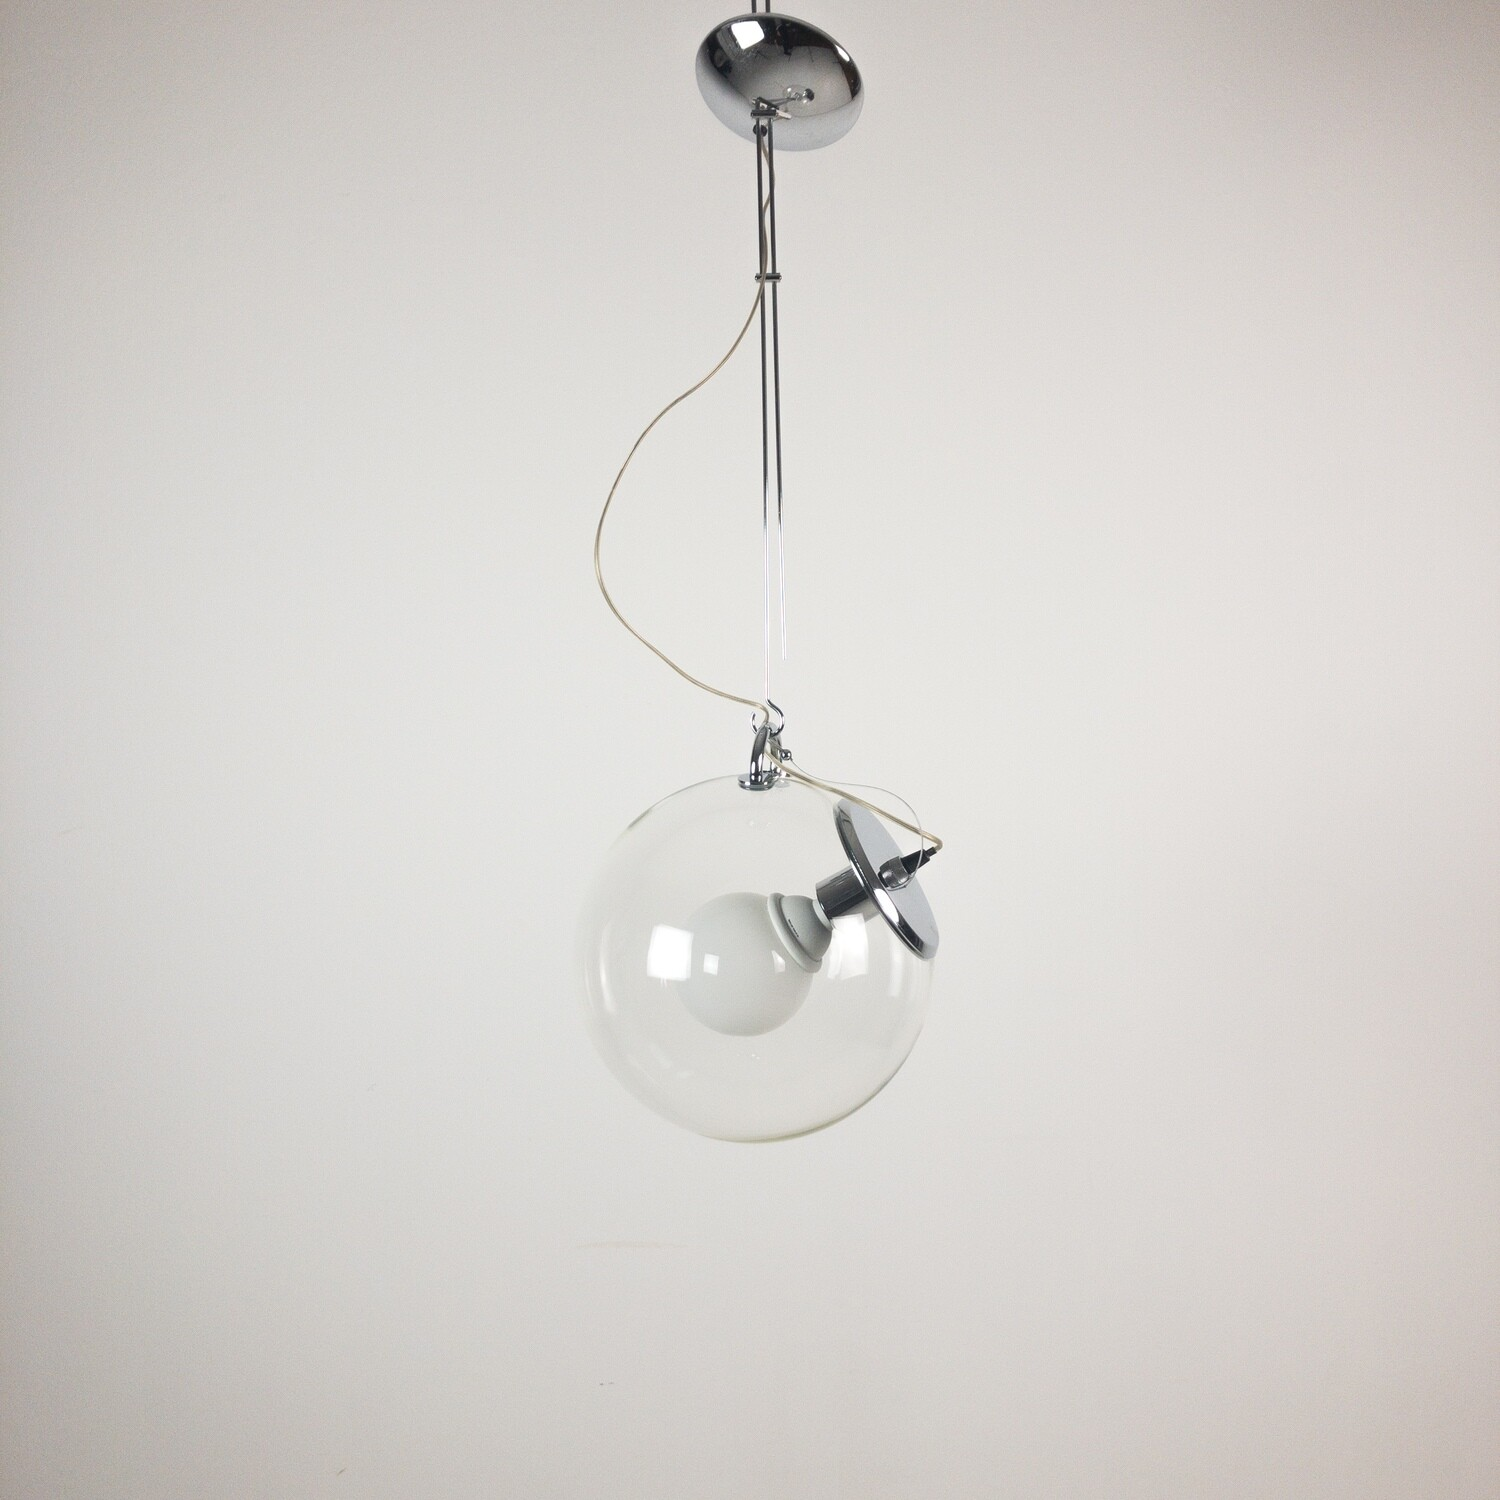 Miconos suspension lamp Design Ernesto Gismondi for Artemide